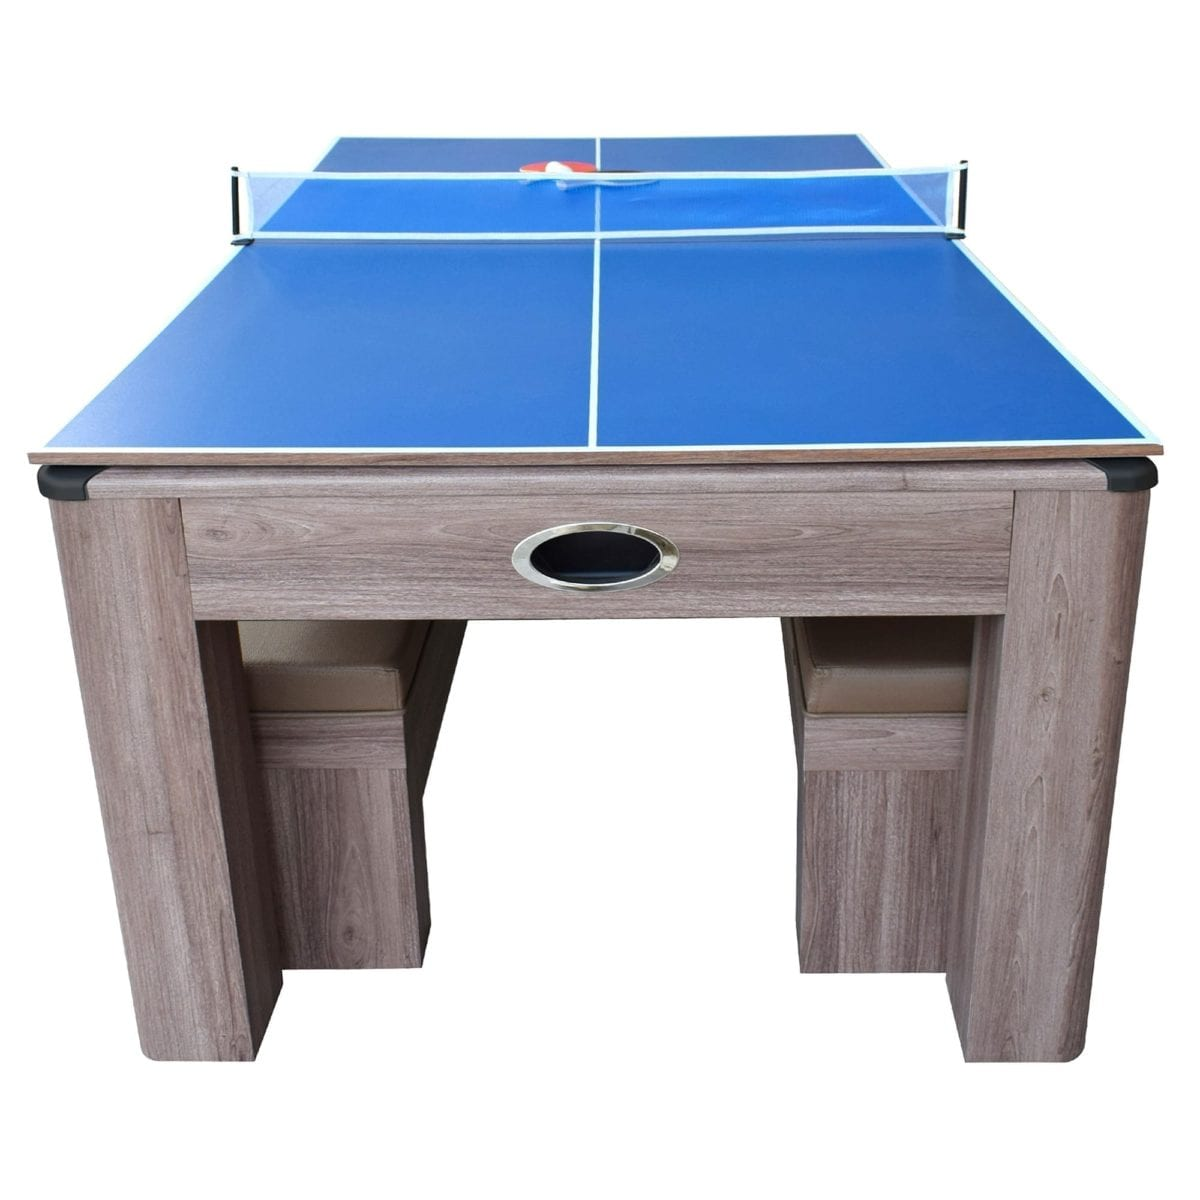 Air Hockey And Table Tennis Combo Game Table With Benches